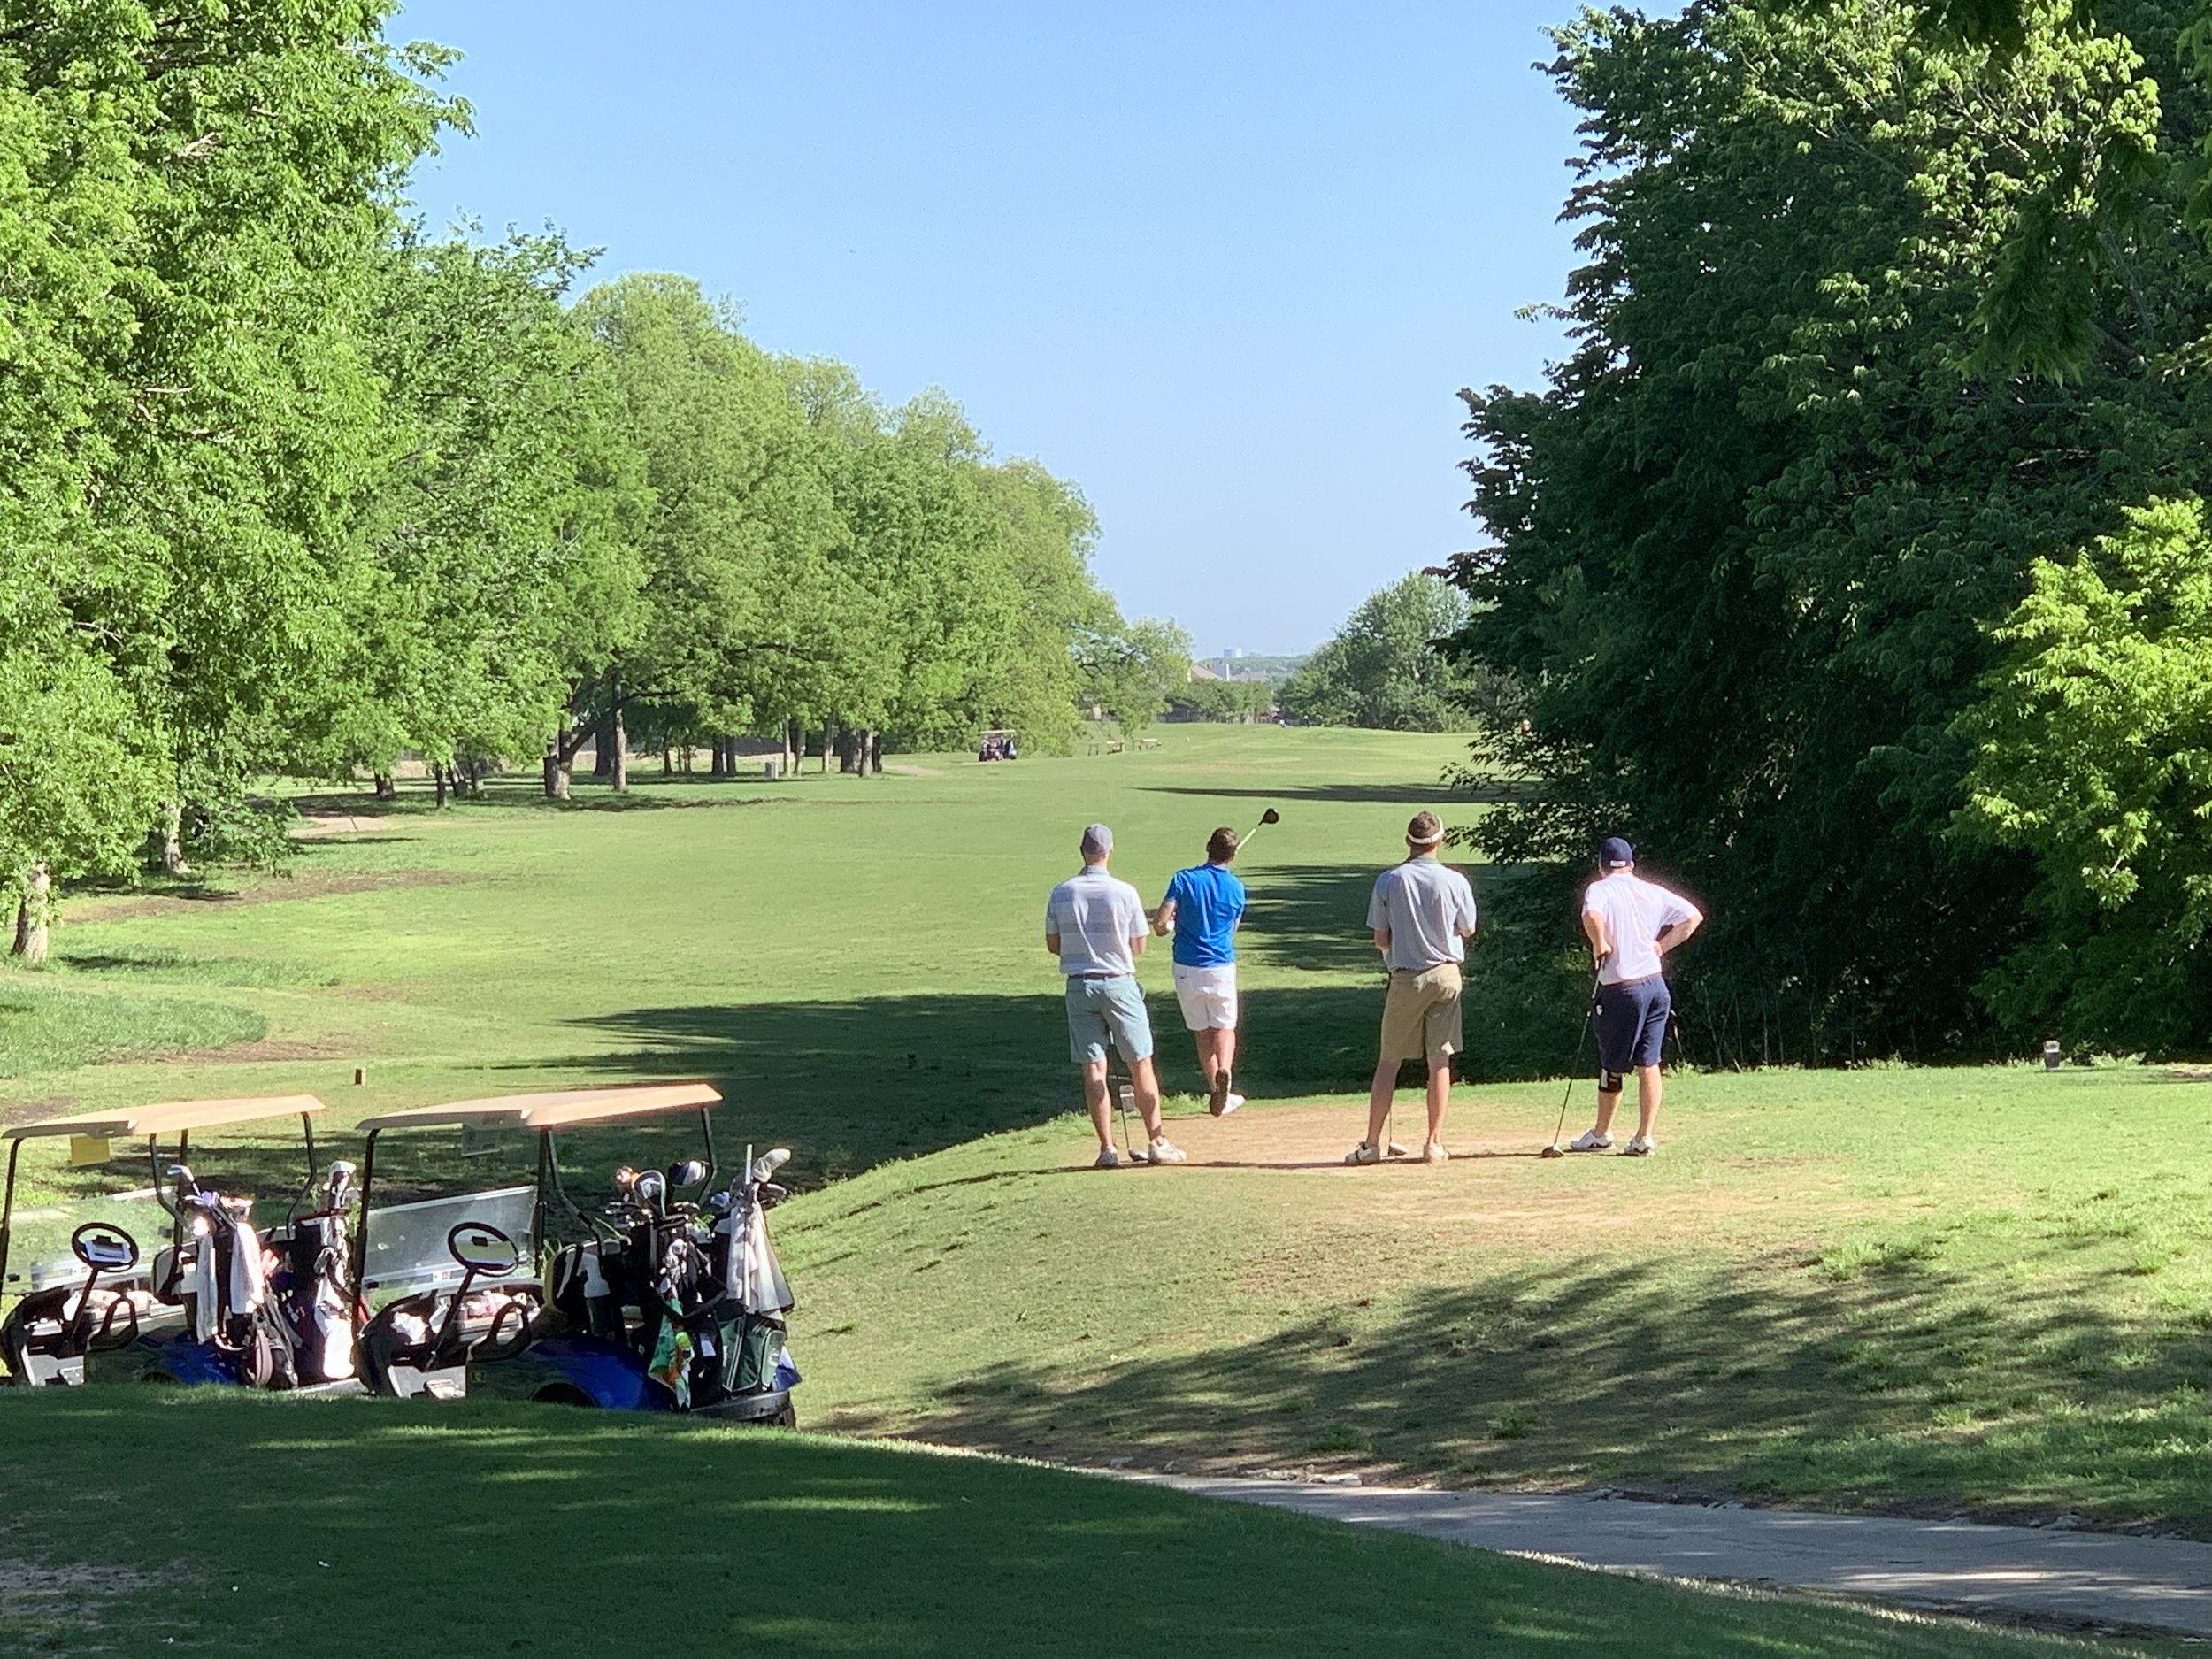 Photo Apr 26, 9 43 47 AM.jpg